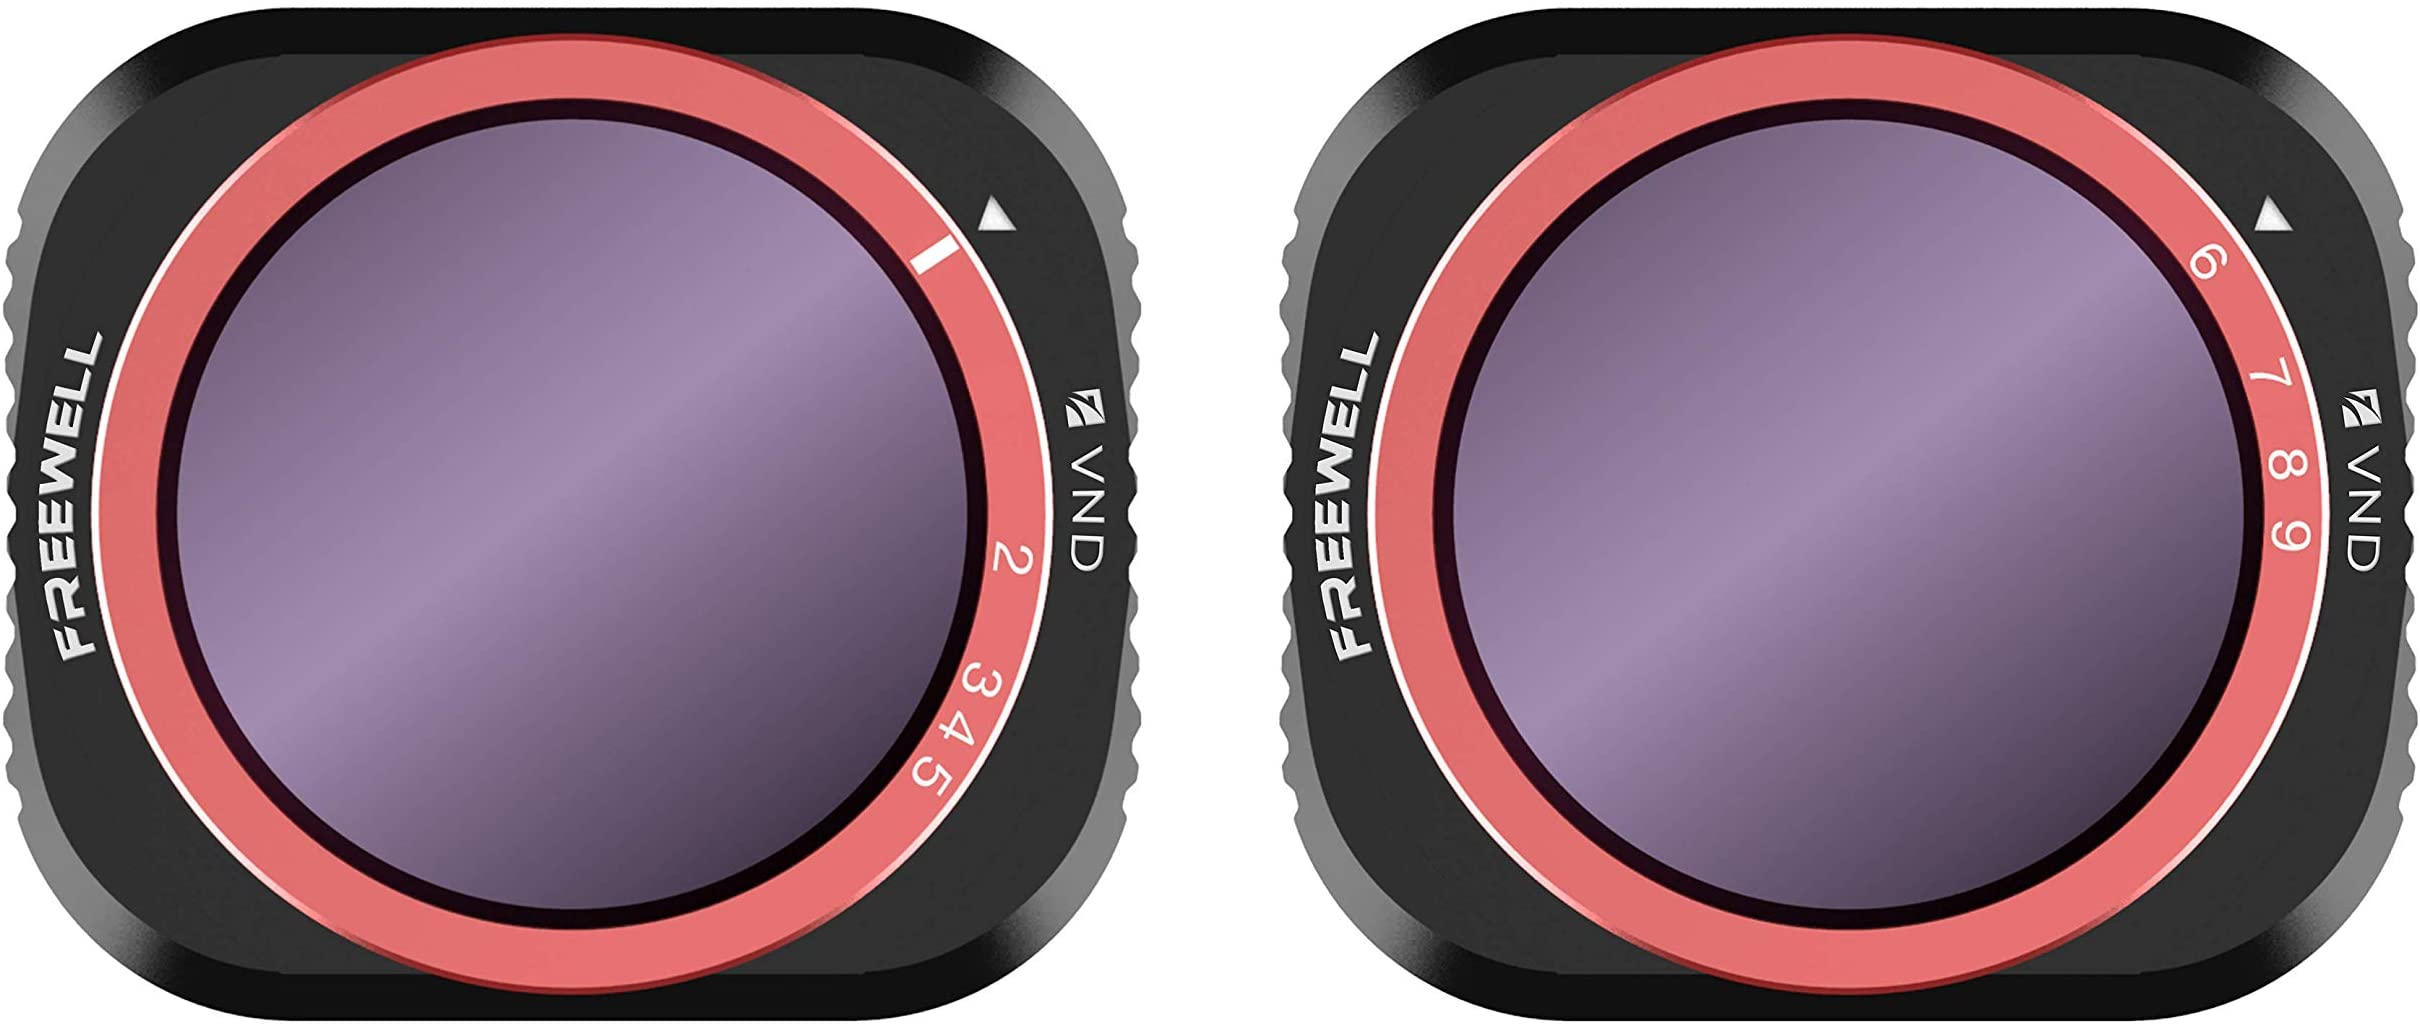 Freewell Variable ND 2-5 Stop, 6-9 Stop 2 Pack VND Filters Compatible with Mavic 2 Pro Drone